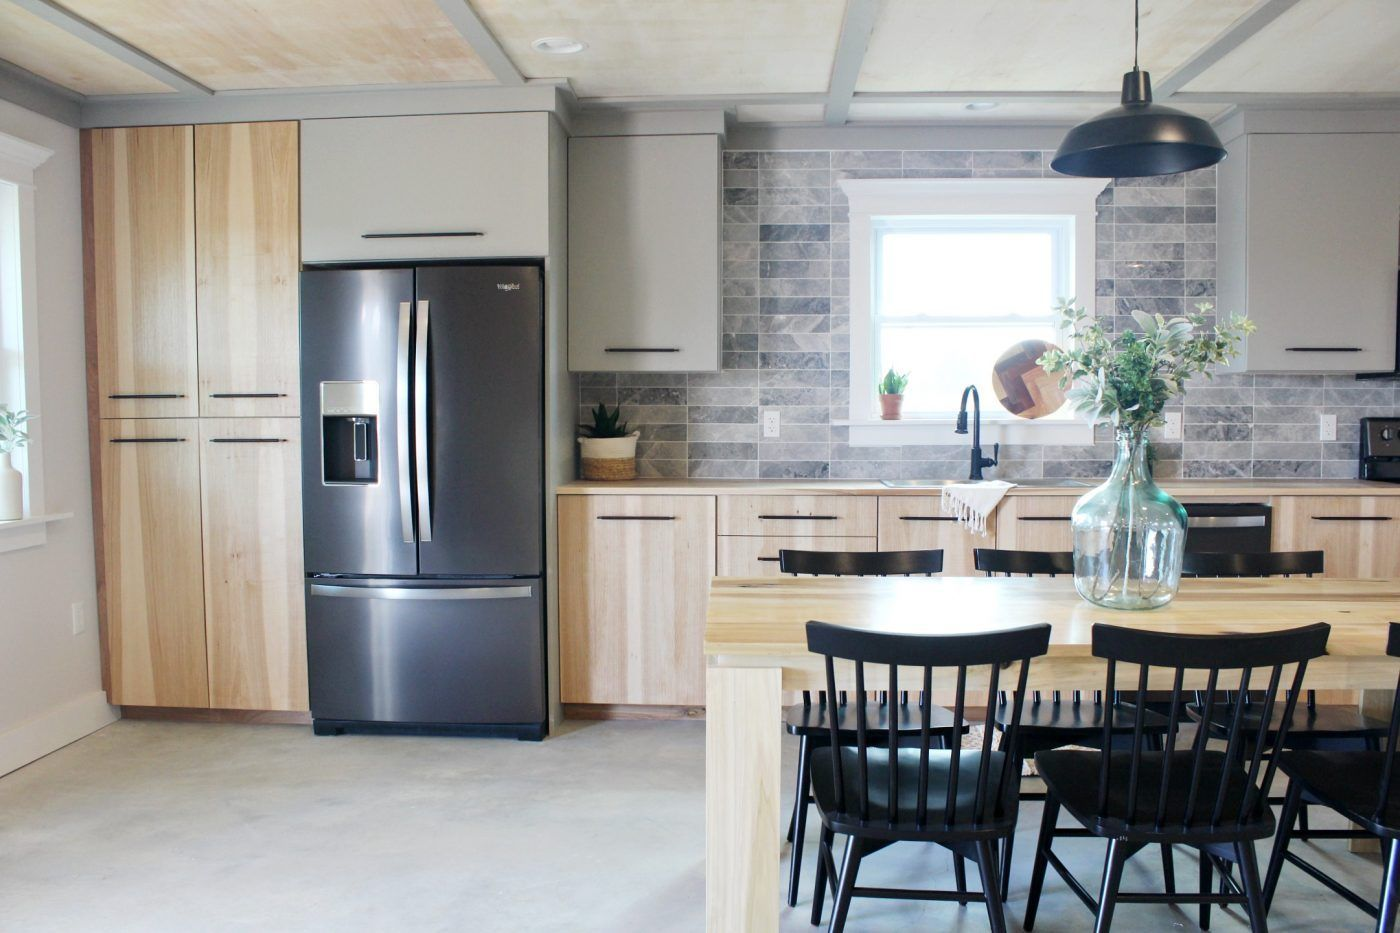 Diy Kitchen Cabinets Made From Only Plywood In 2020 Kitchen Cabinet Styles Diy Kitchen Cabinets Diy Kitchen Cabinets Build